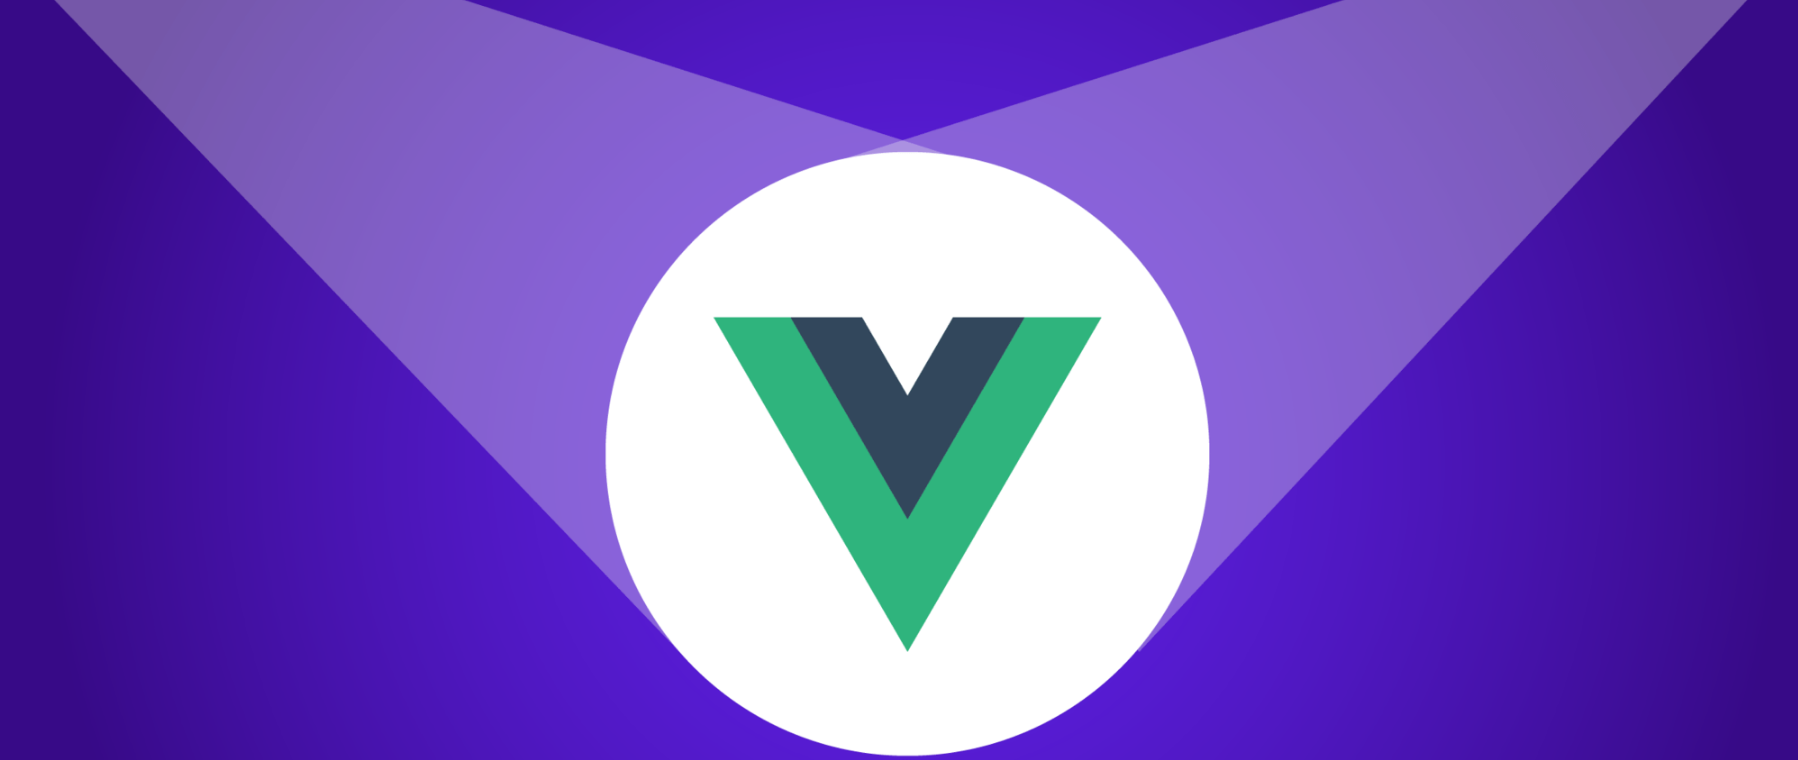 Vue js Feed - Issue #47: Mixins in Vue js, #XSS in #vuejs, nuxtjs